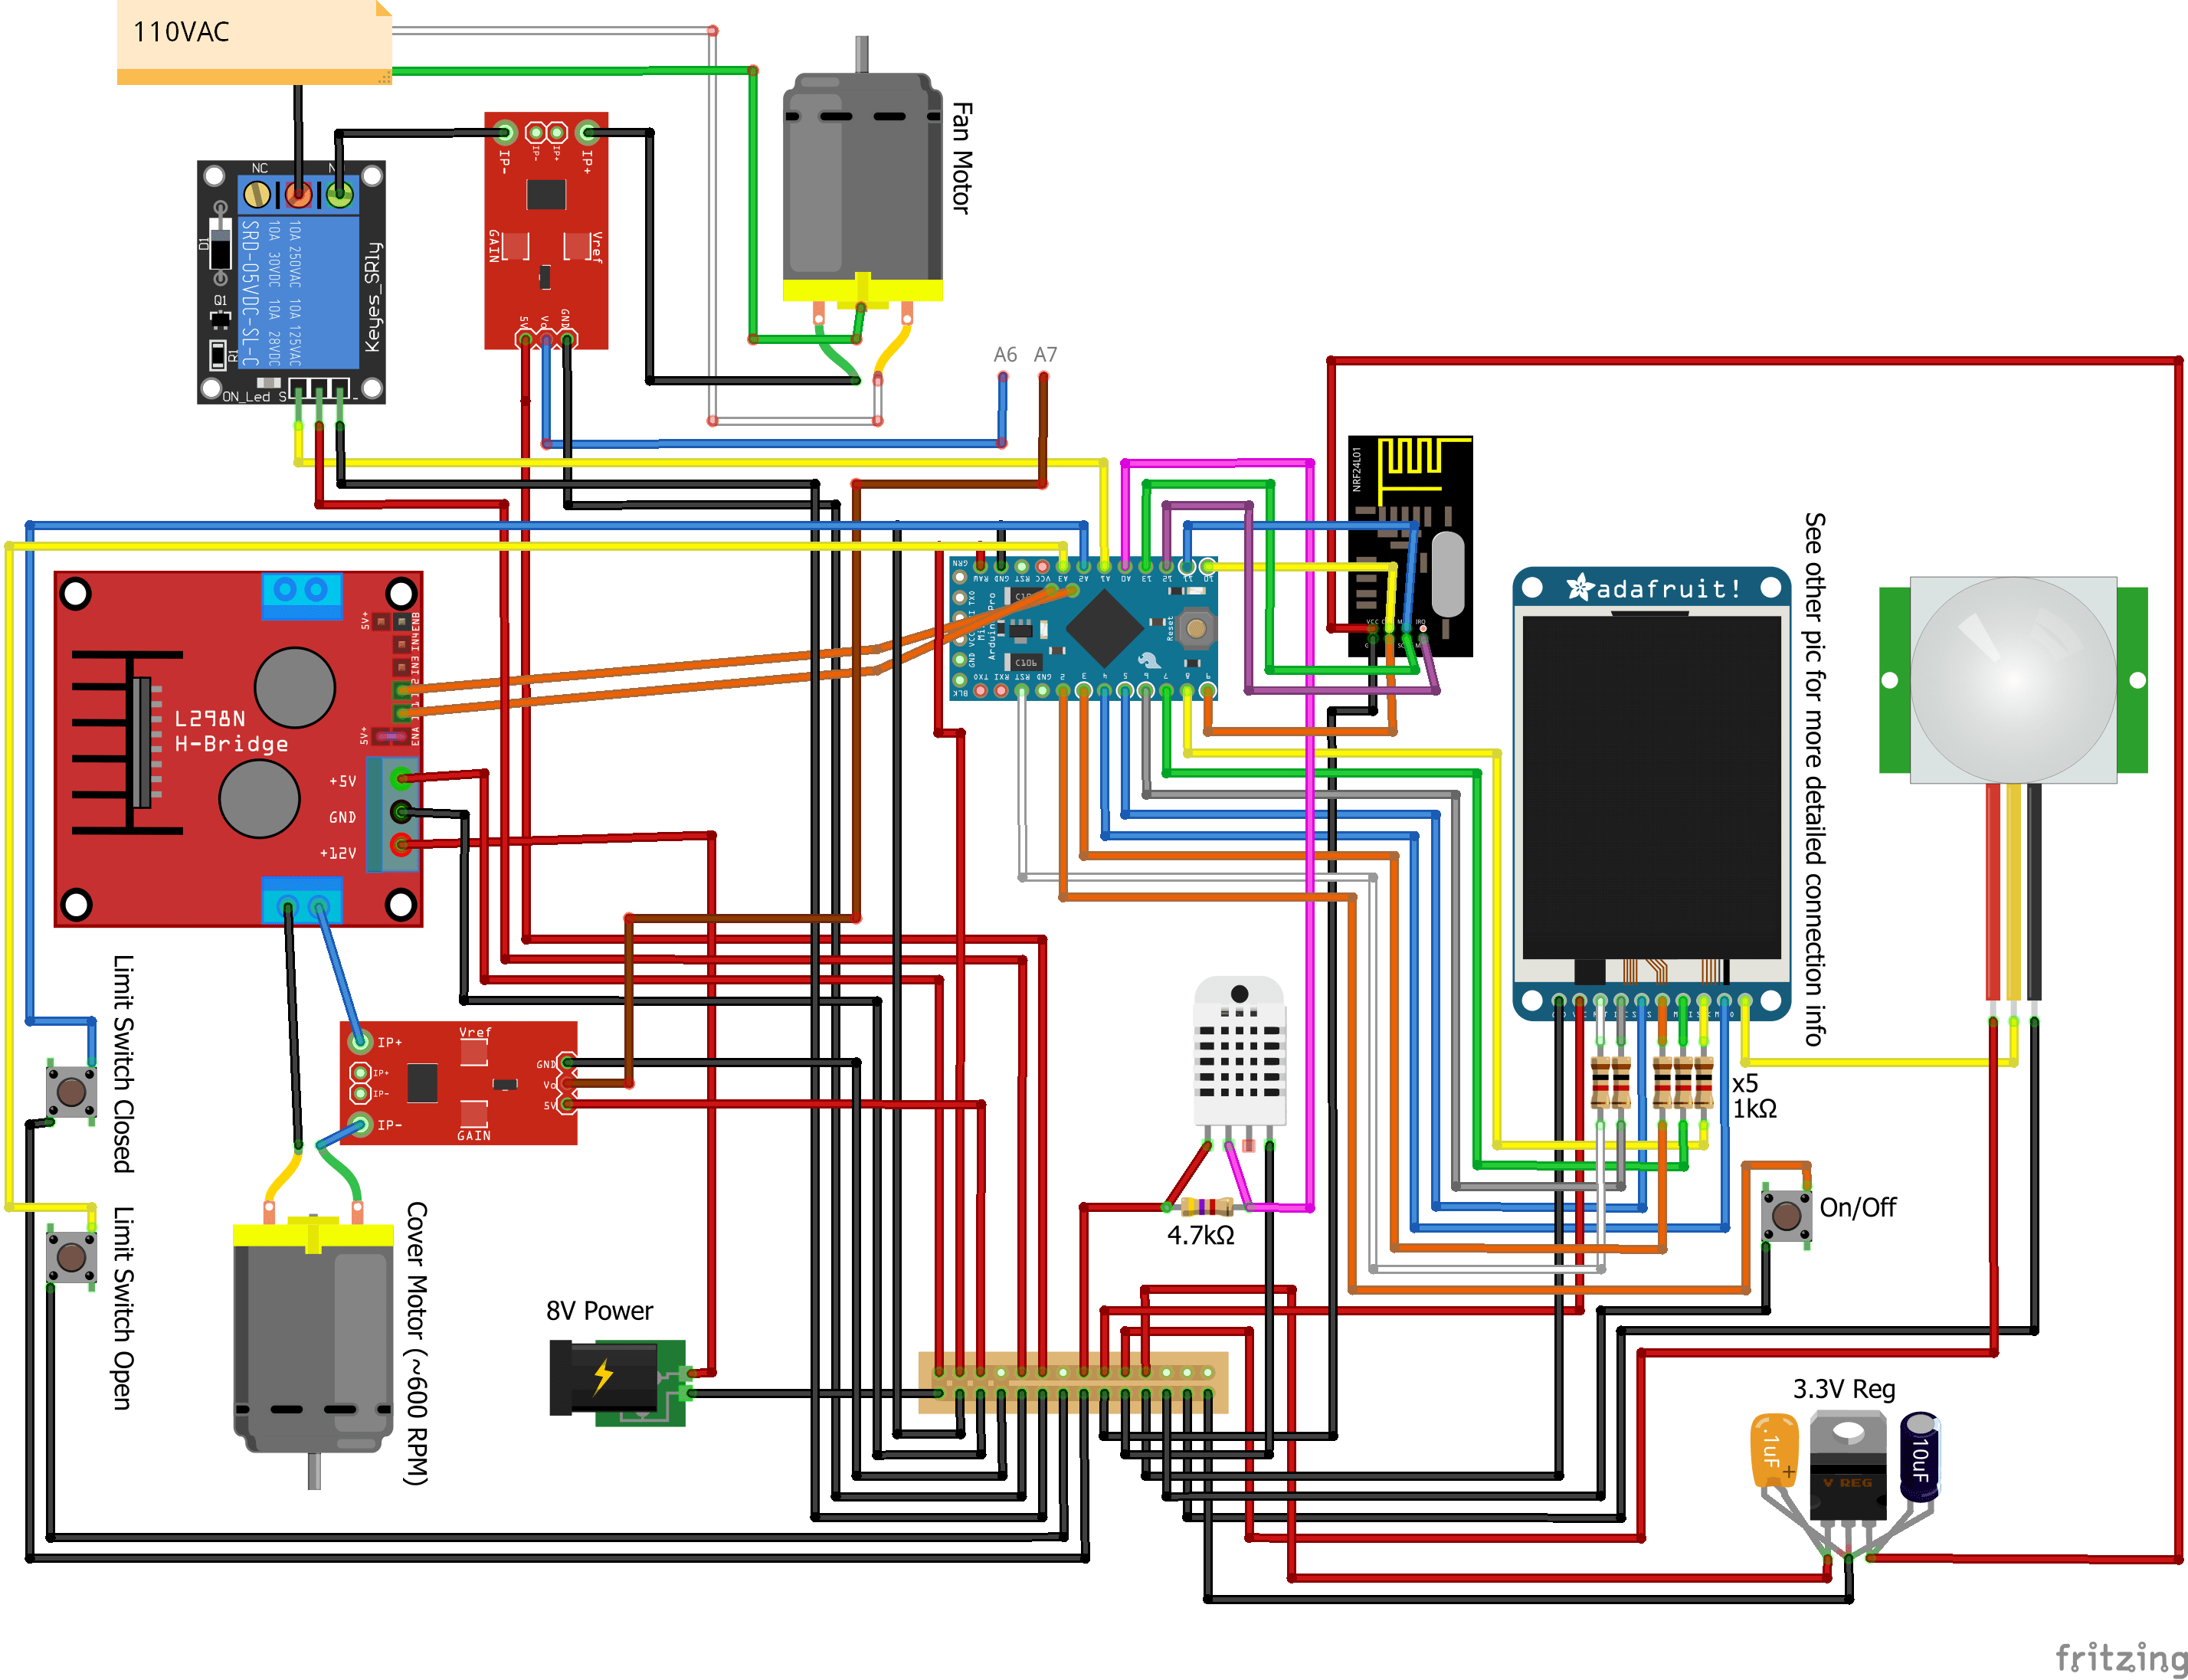 Fritzing Whole House Fan Wiring?resize\\\\\\\\\\\\\\\\\\\\\\\\\\\\\\\\\\\\\\\\\\\\\\\=665%2C511\\\\\\\\\\\\\\\\\\\\\\\\\\\\\\\\\\\\\\\\\\\\\\\&ssl\\\\\\\\\\\\\\\\\\\\\\\\\\\\\\\\\\\\\\\\\\\\\\\=1 clayton 1600g wood furnace wiring diagrams wiring diagrams clayton wood furnace wiring diagram at pacquiaovsvargaslive.co